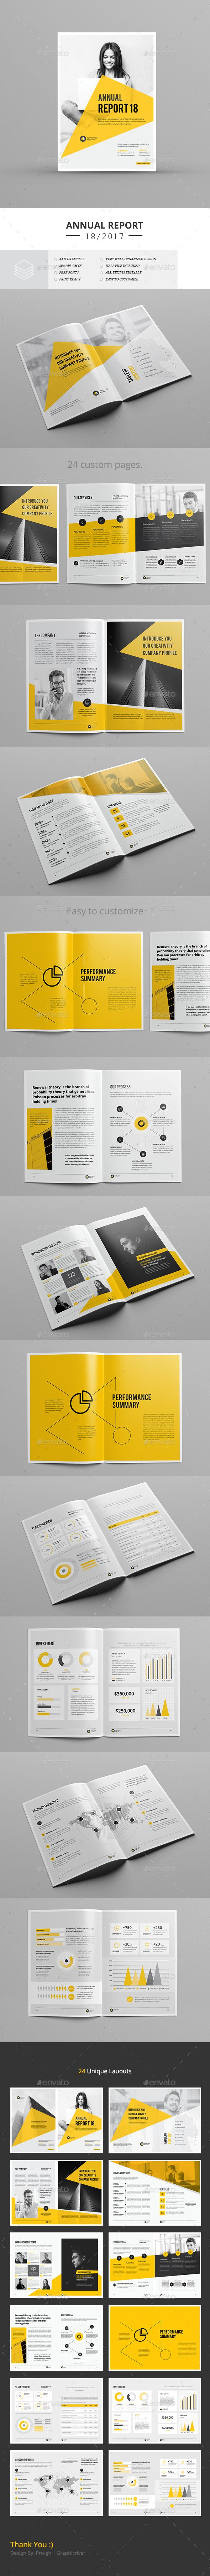 Annual Report Template | Diseño editorial, Editorial y Folletos